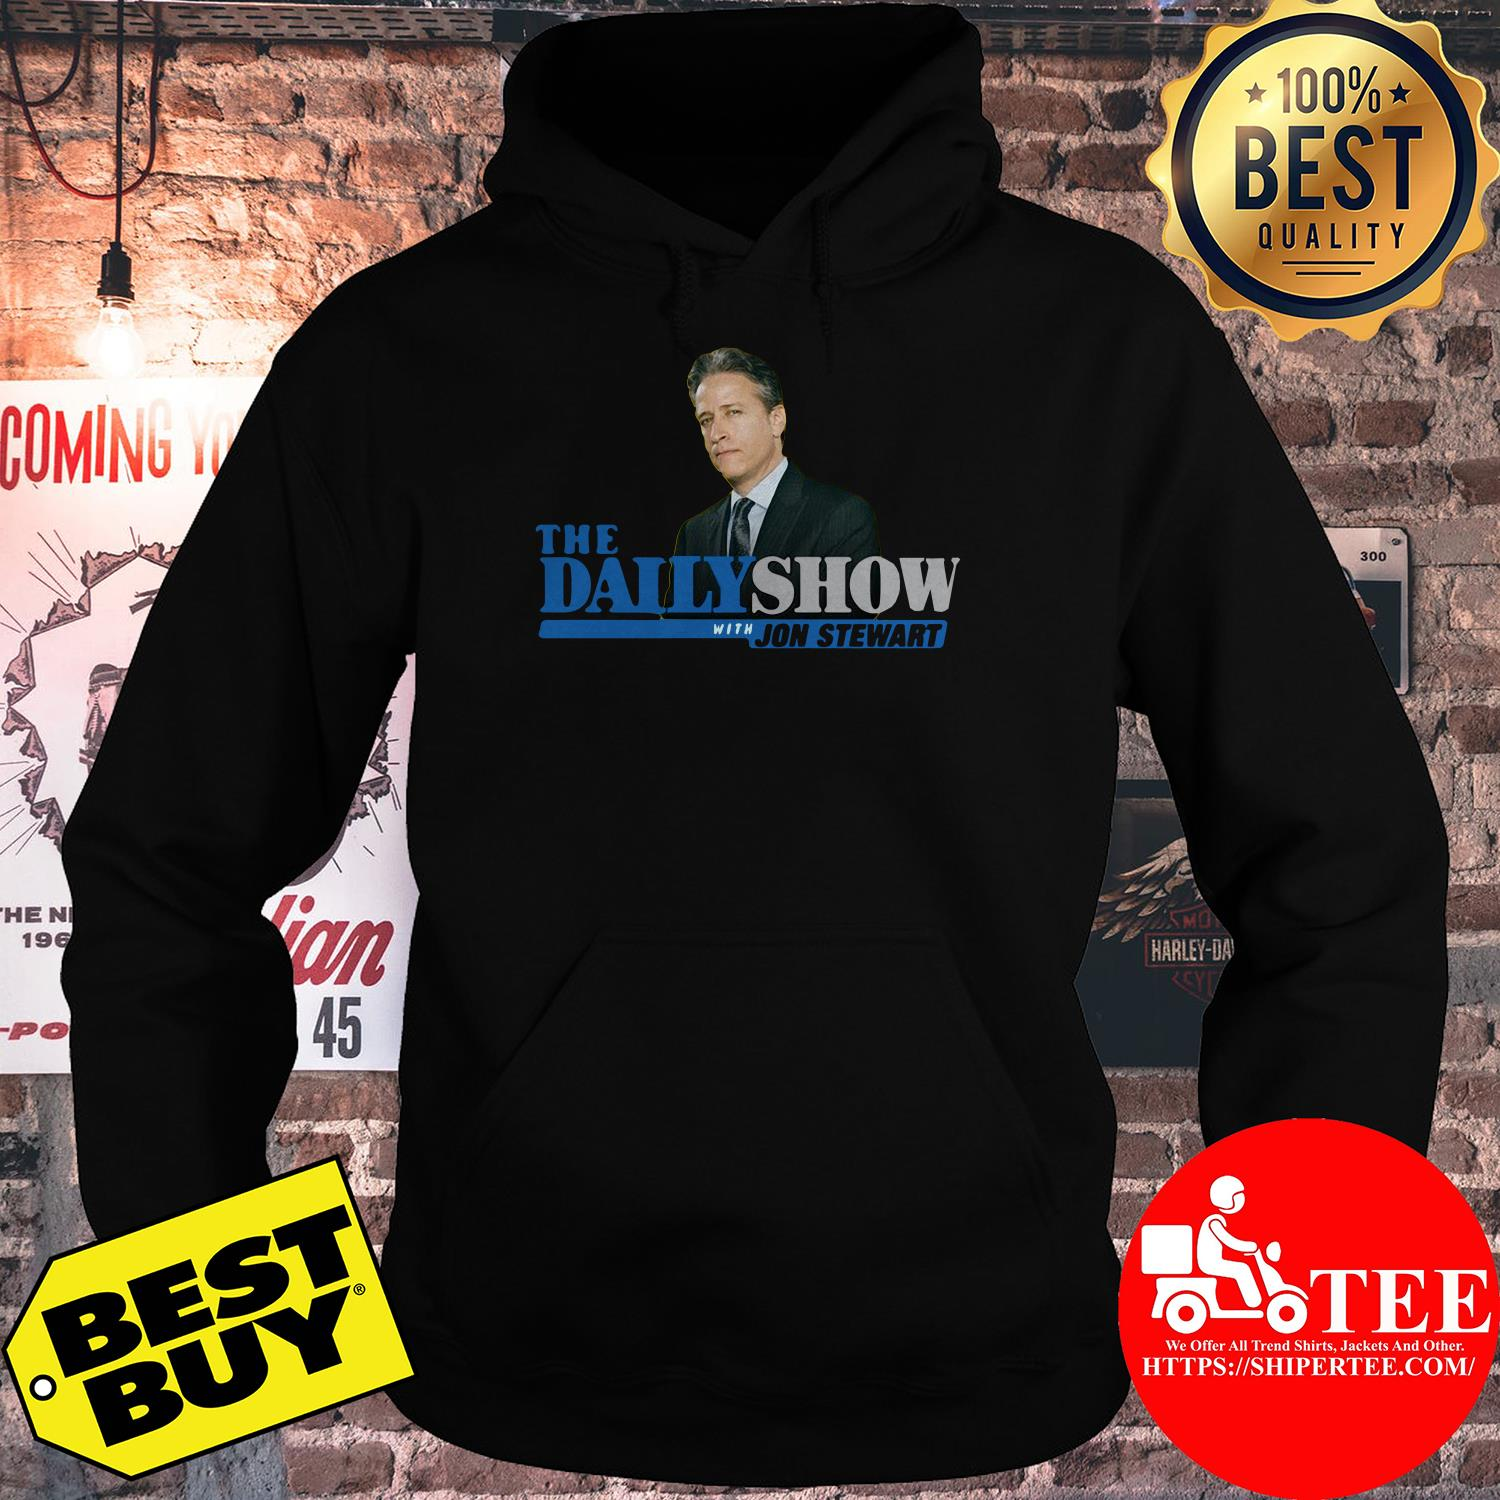 The Daily Show With Jon Stewart hoodie